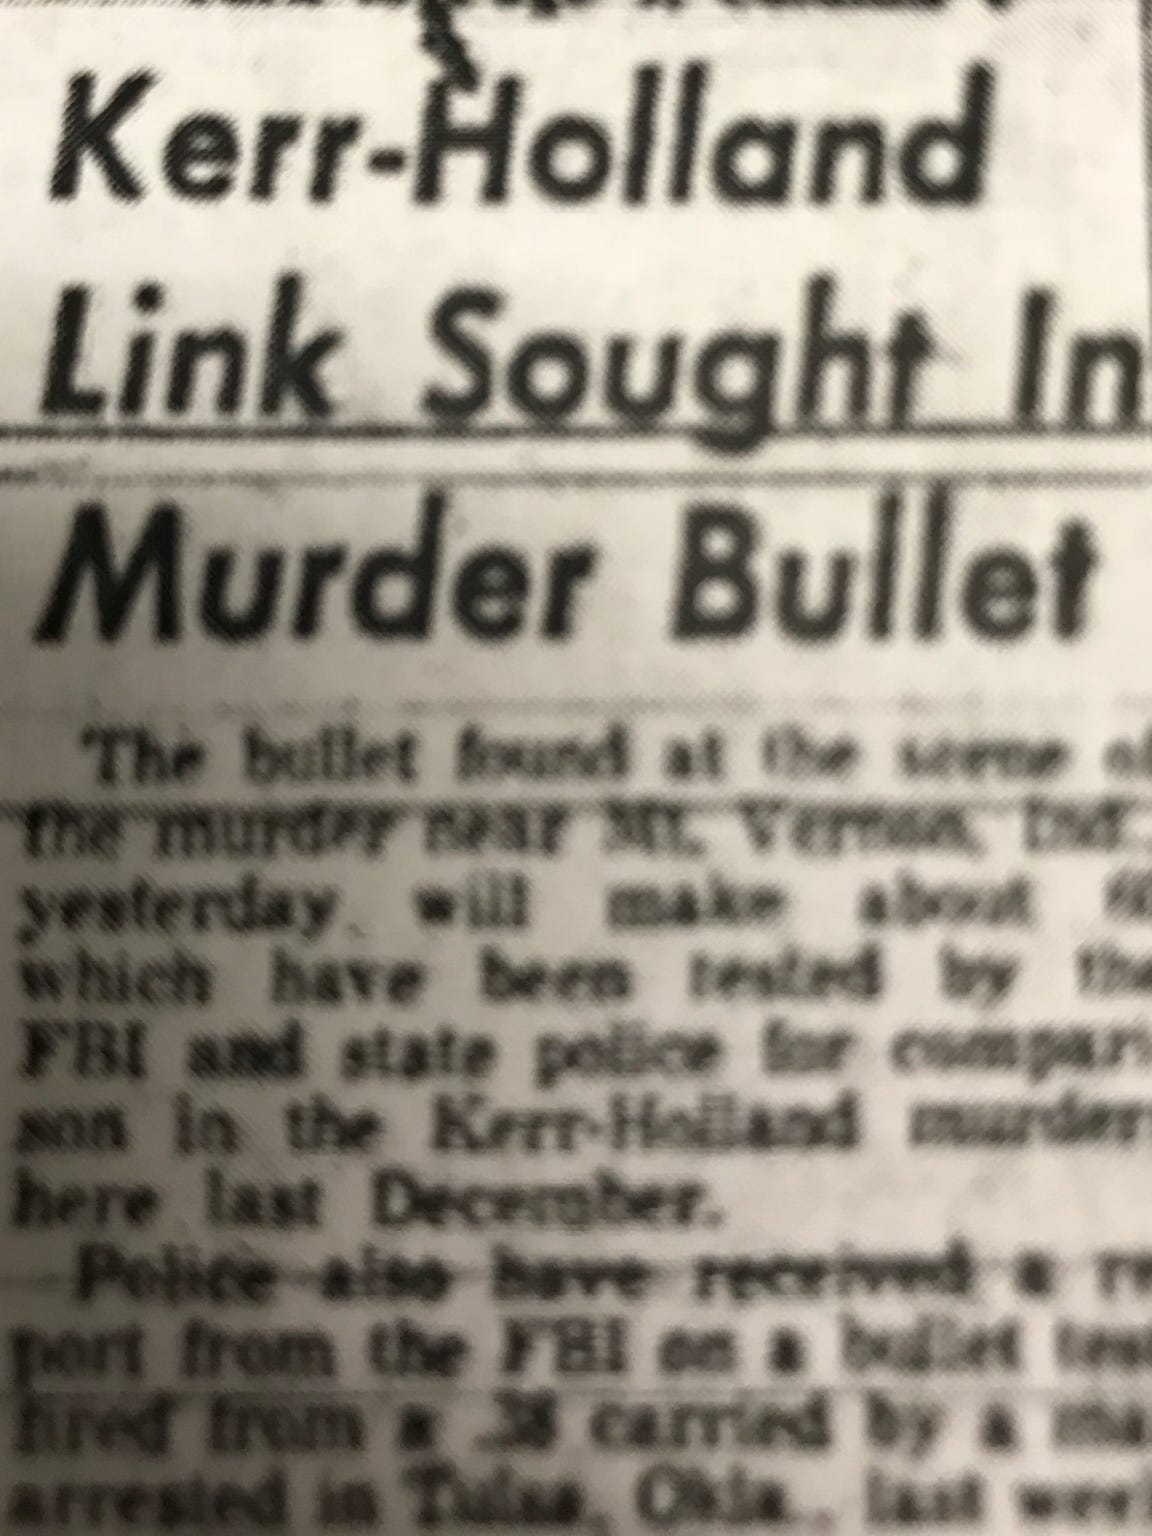 A headline in the March 22, 1955 edition of the Evansville